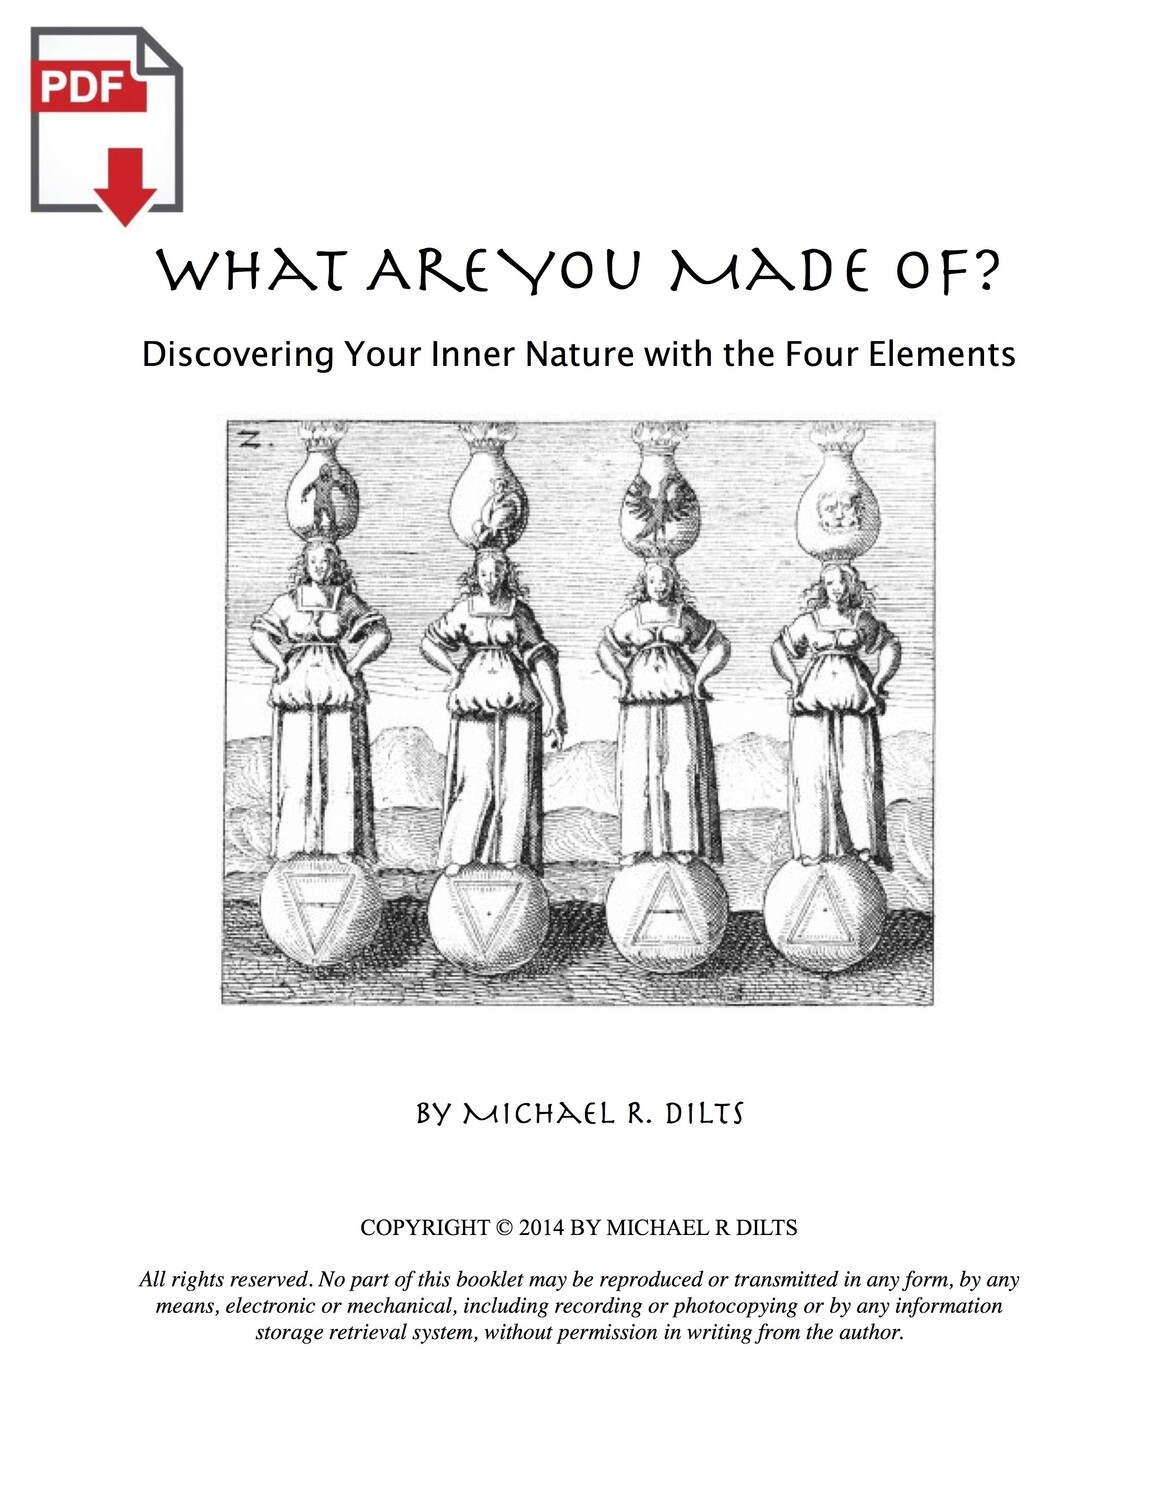 What Are You Made Of? - Discovering Your Inner Nature with the Four Elements [PDF]